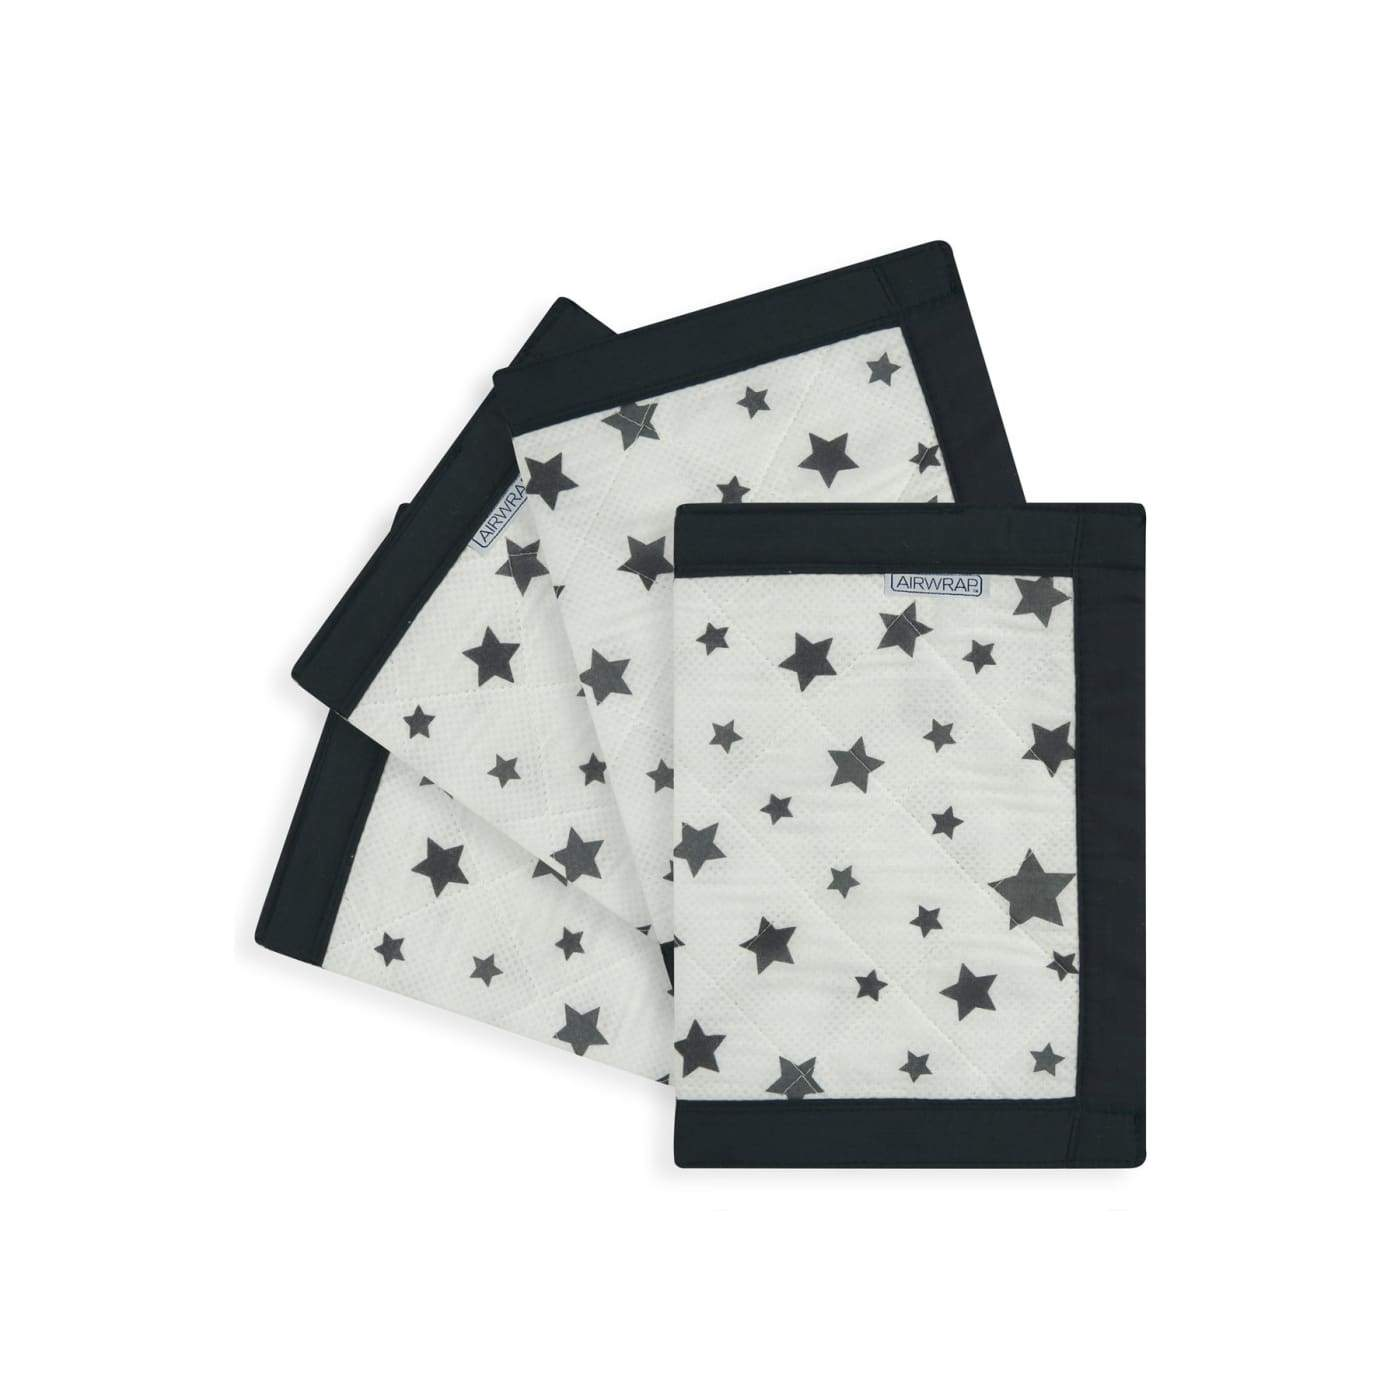 Airwrap 4 Sides - Charcoal Stars - NURSERY & BEDTIME - COT BUMPERS